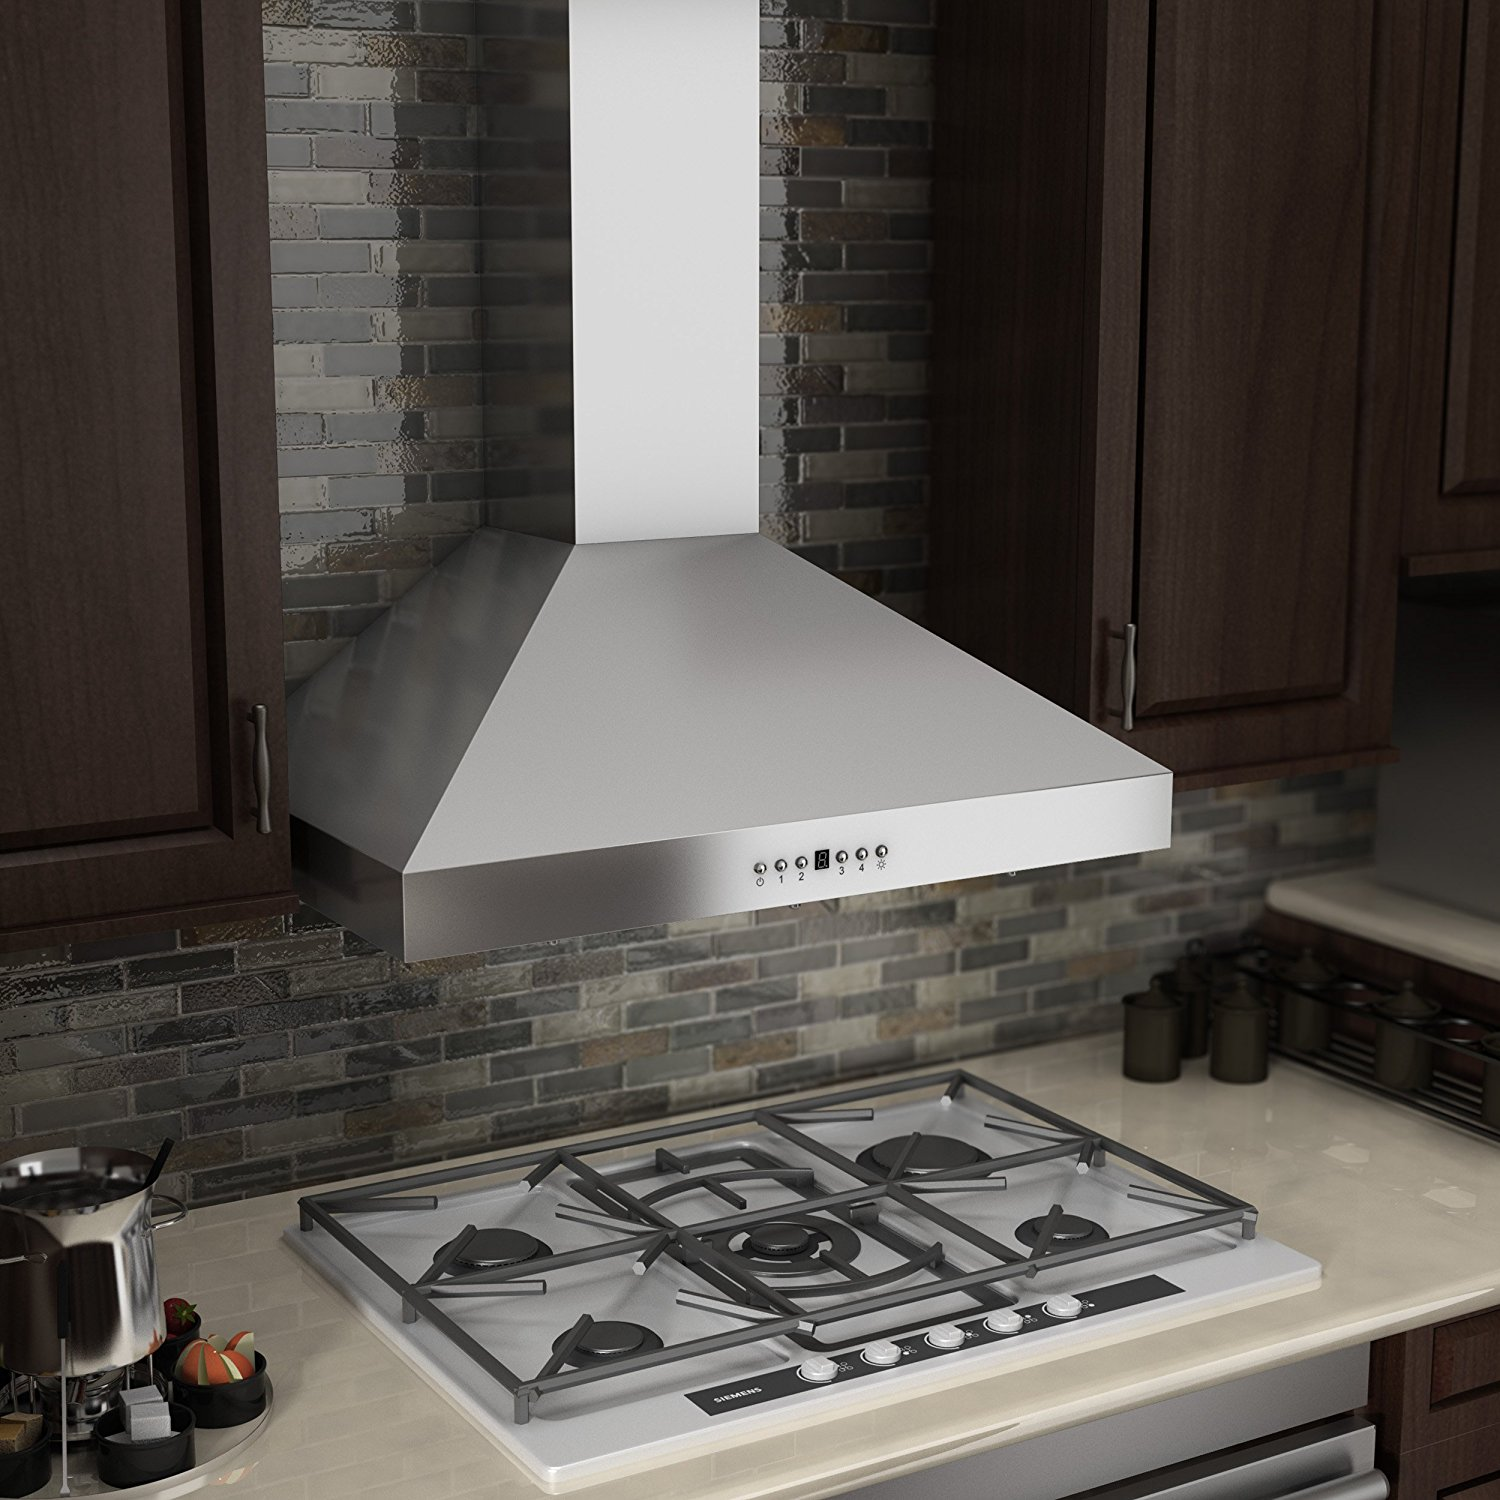 The Best-Selling Range Hoods On Amazon (not Just For